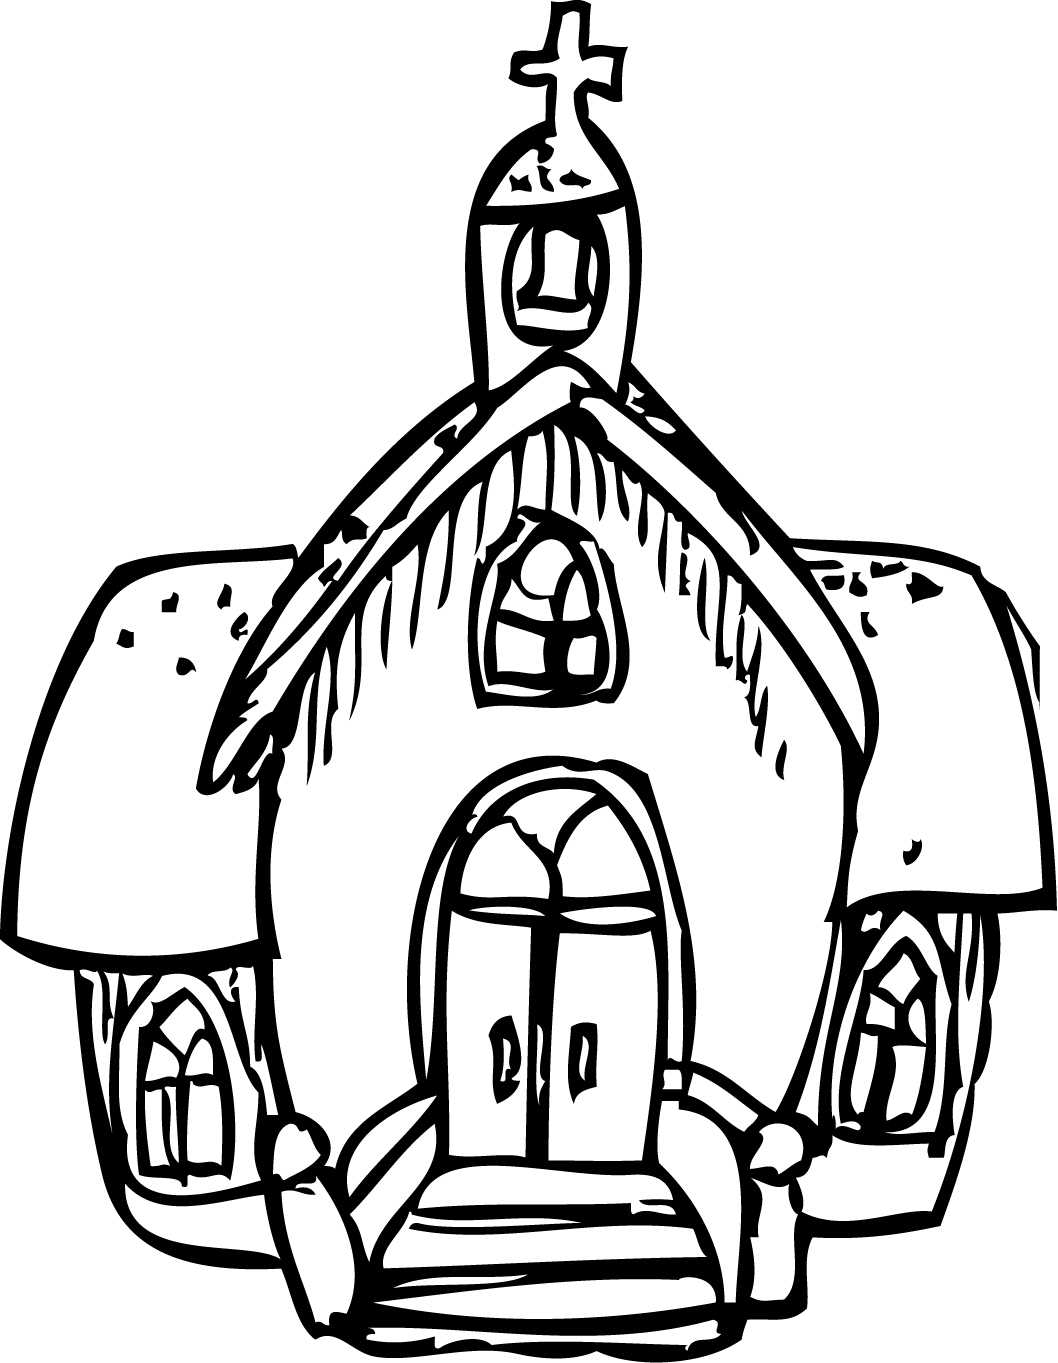 Free Free Church Clipart, Download Free Clip Art, Free Clip.